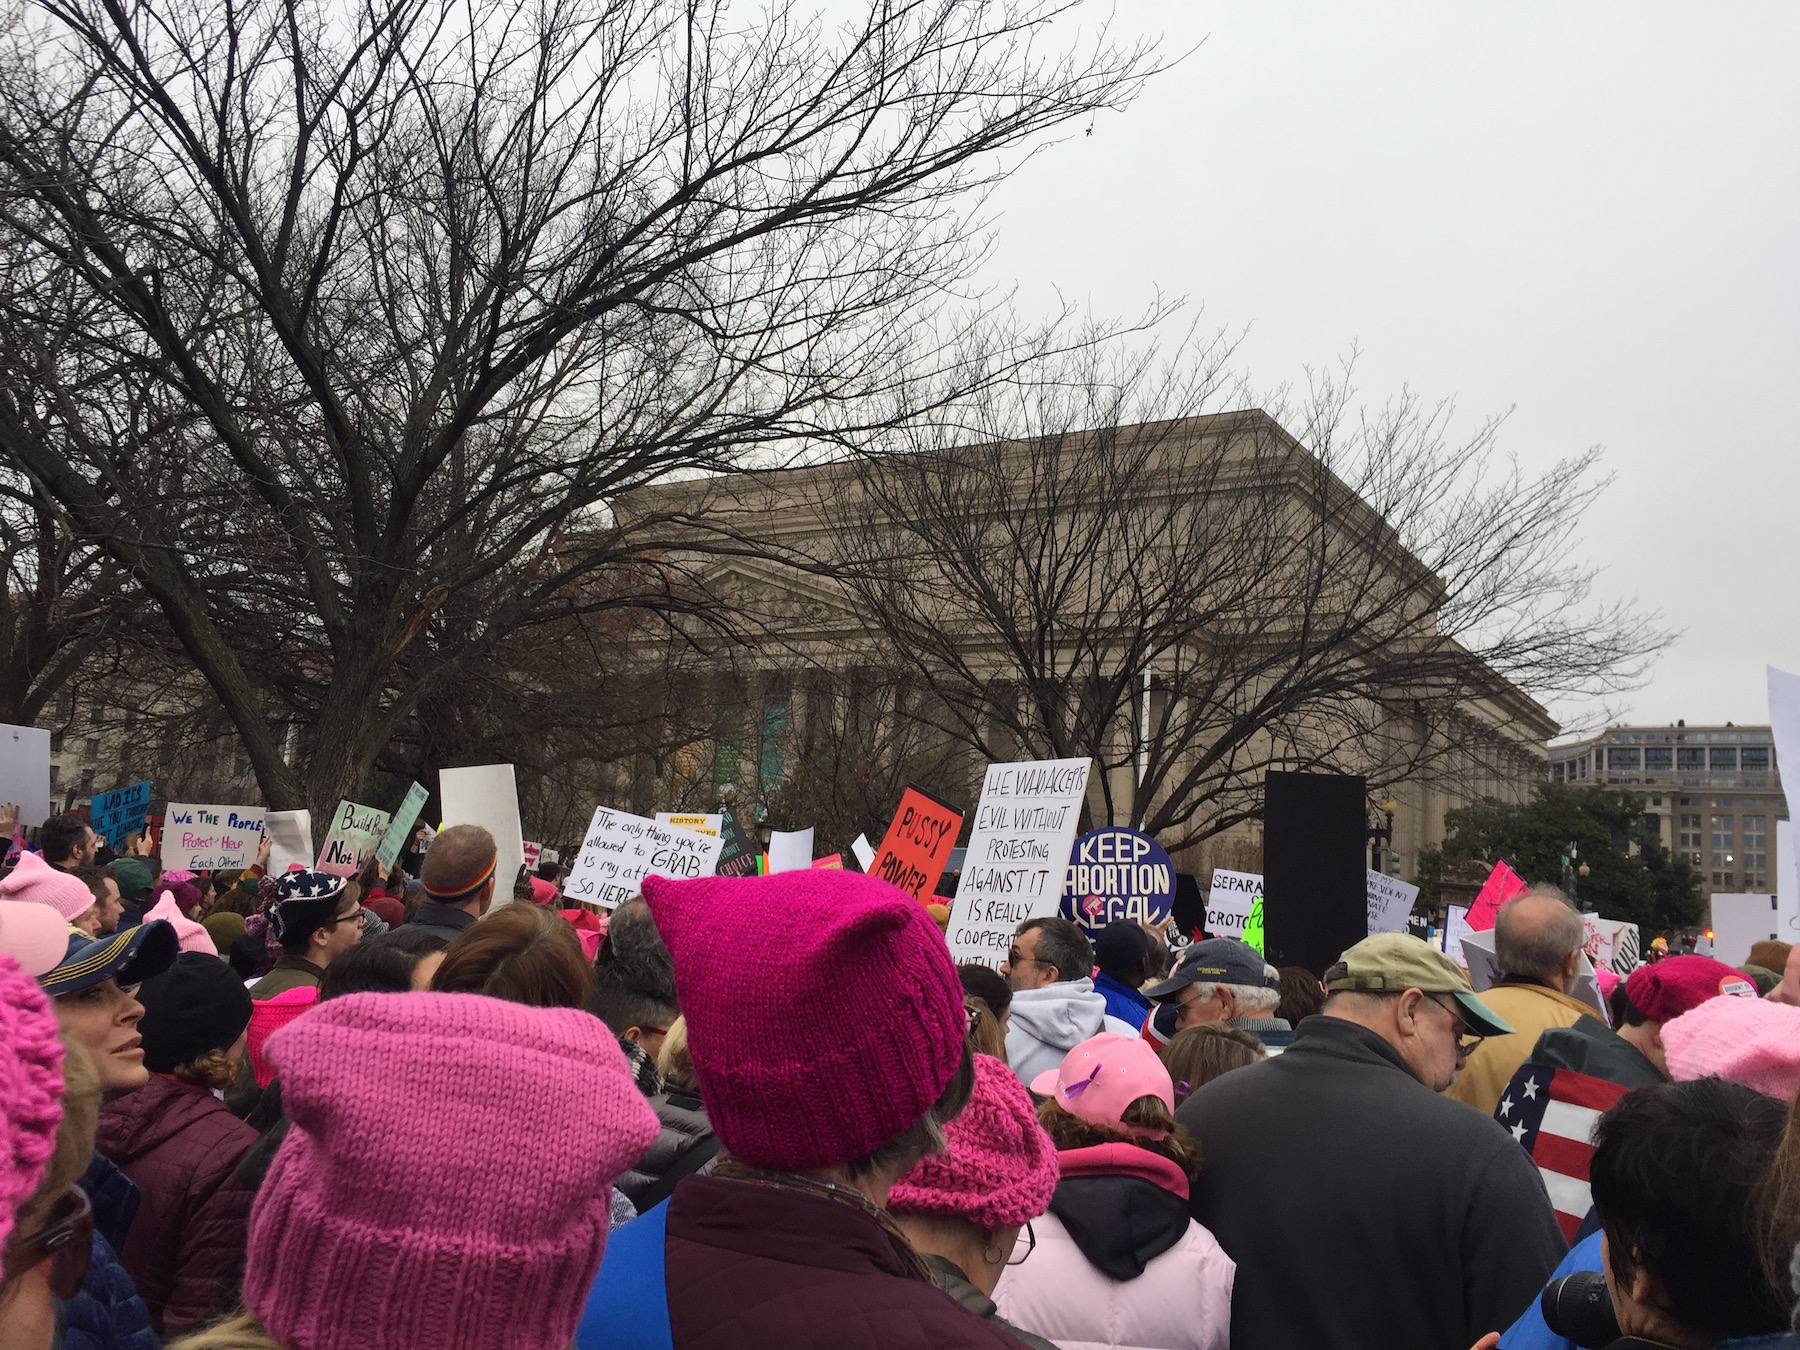 Thousands+march+down+the+streets+of+D.C.